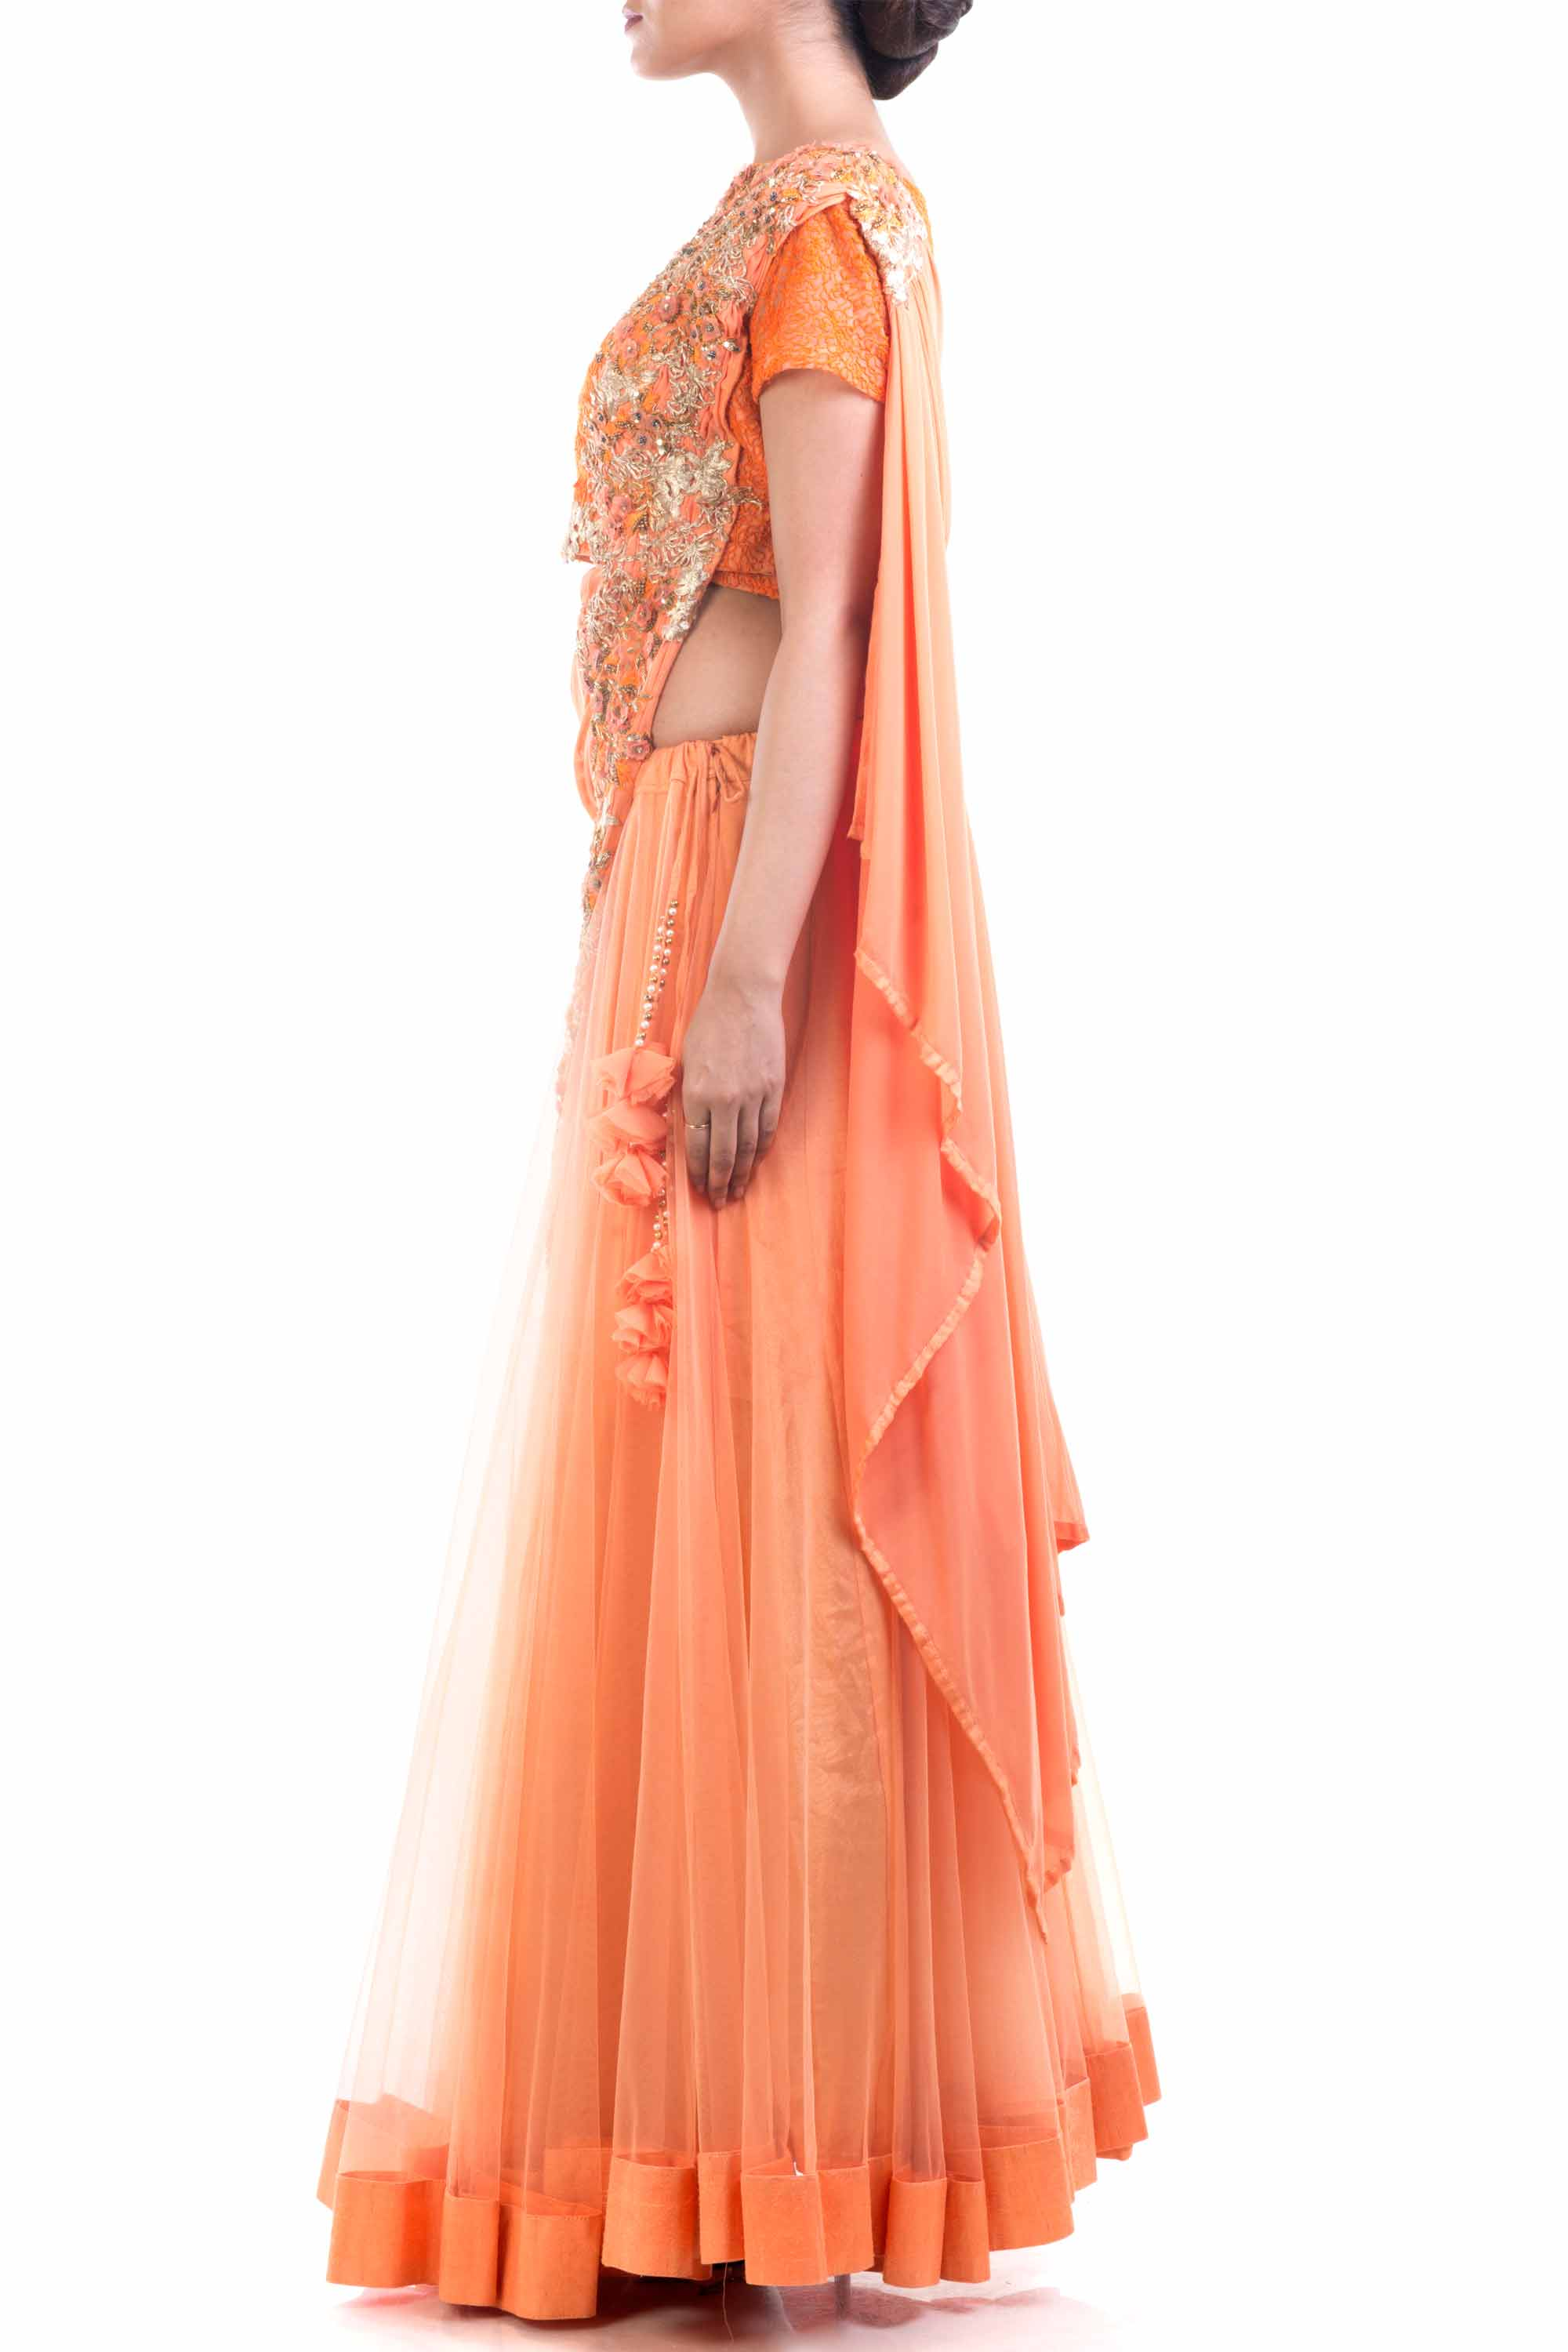 Tangerine Orange Draped Lehenga Gown Side